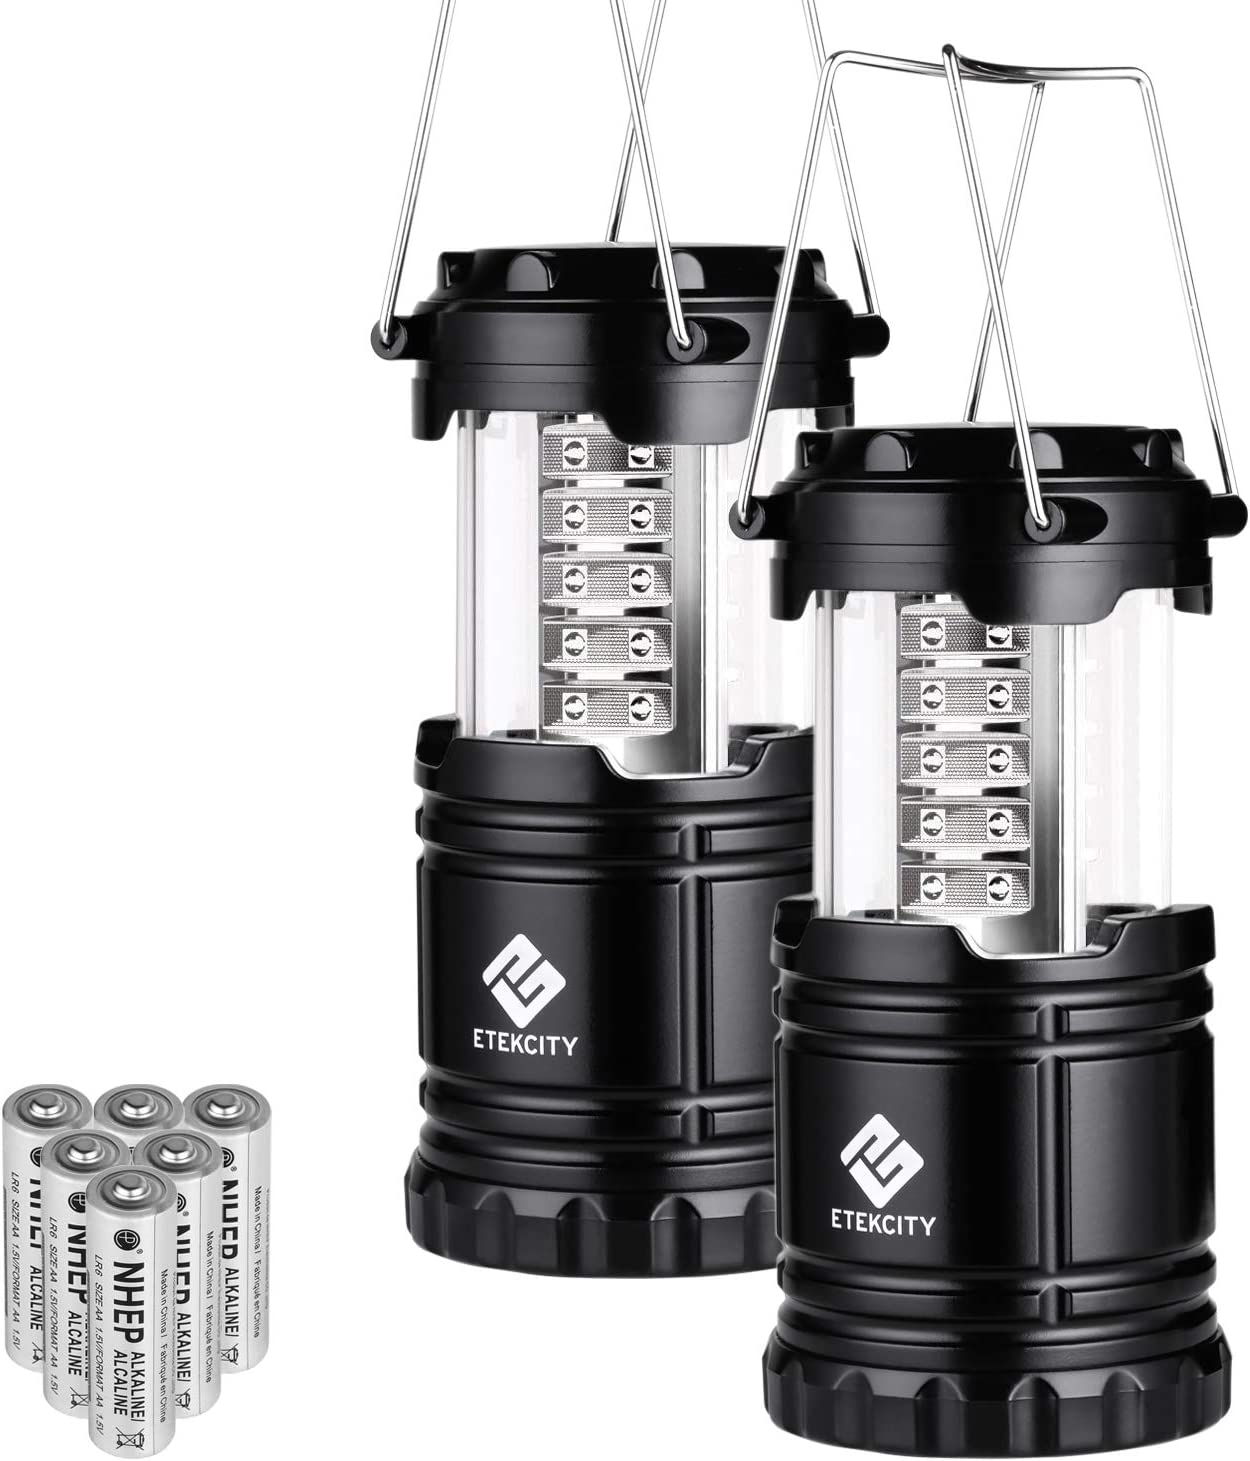 Etekcity LED Camping Lantern Portable Flashlight with AA Batteries – Survival Kit for Emergency, Hurricane, Power Outage, CL10 Black, Collapsible 2 Pack